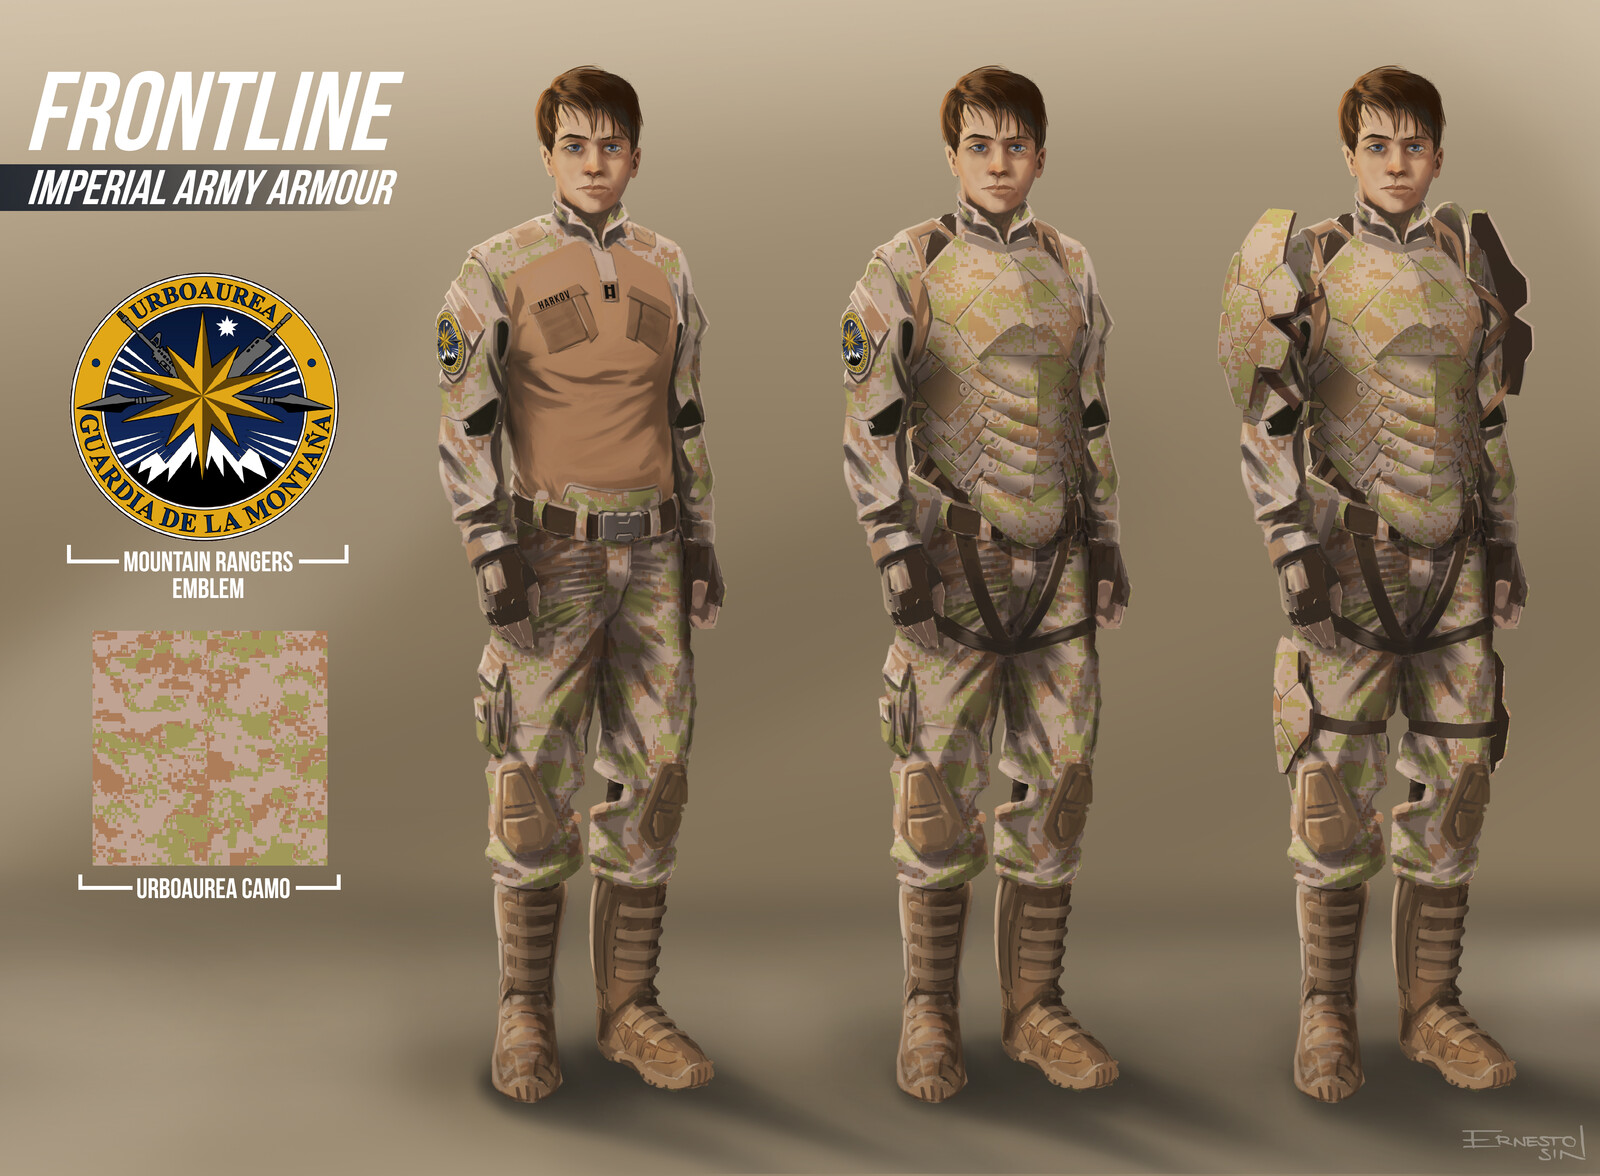 Design for our imperial uniform, camo pattern, and armour.